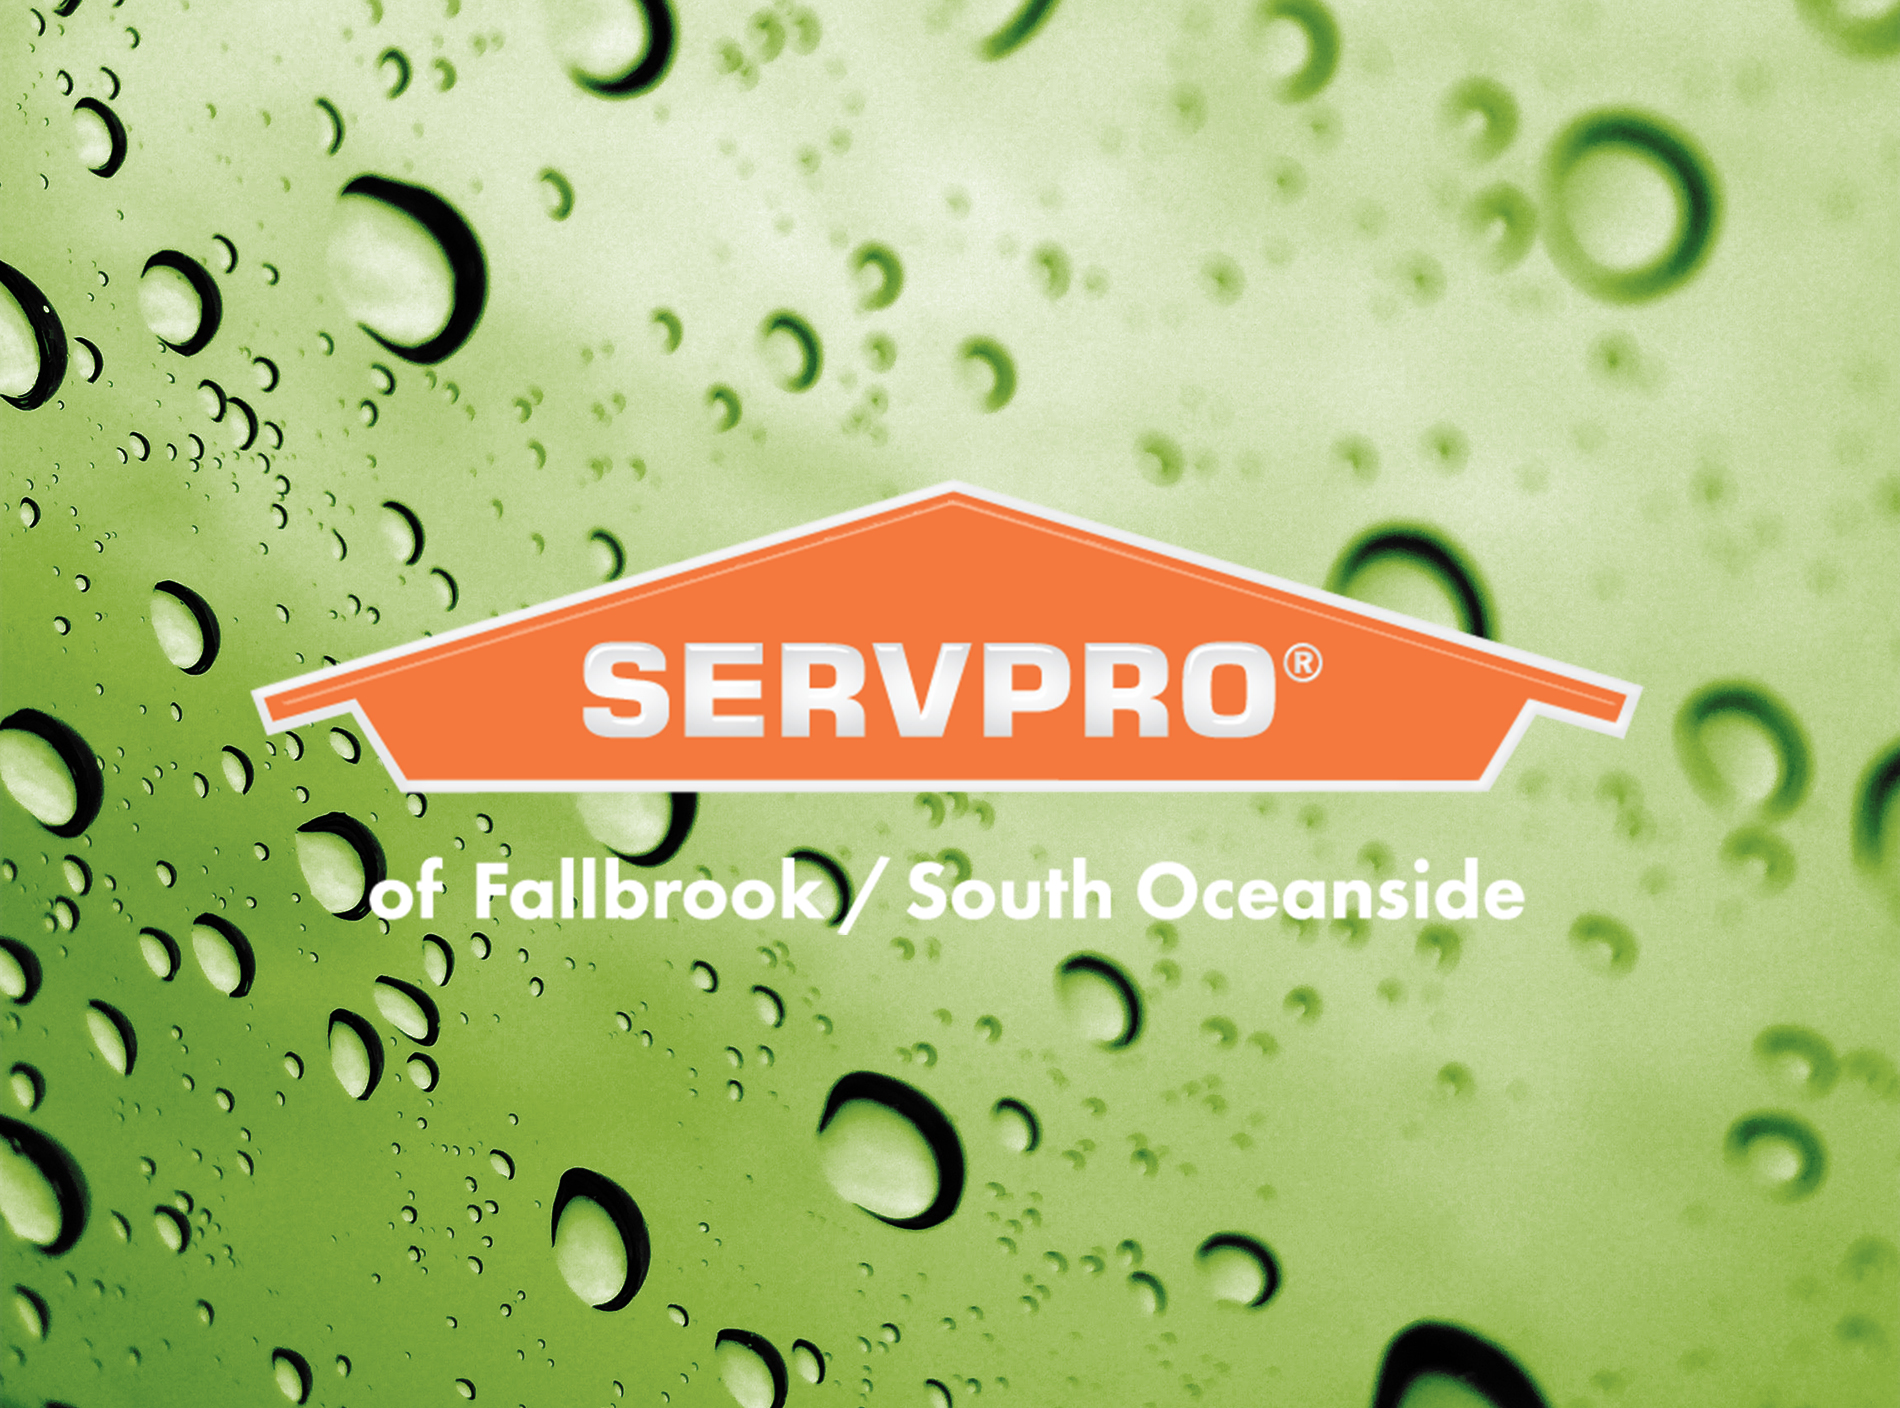 Servpro of Fallbrook/South Oceanside